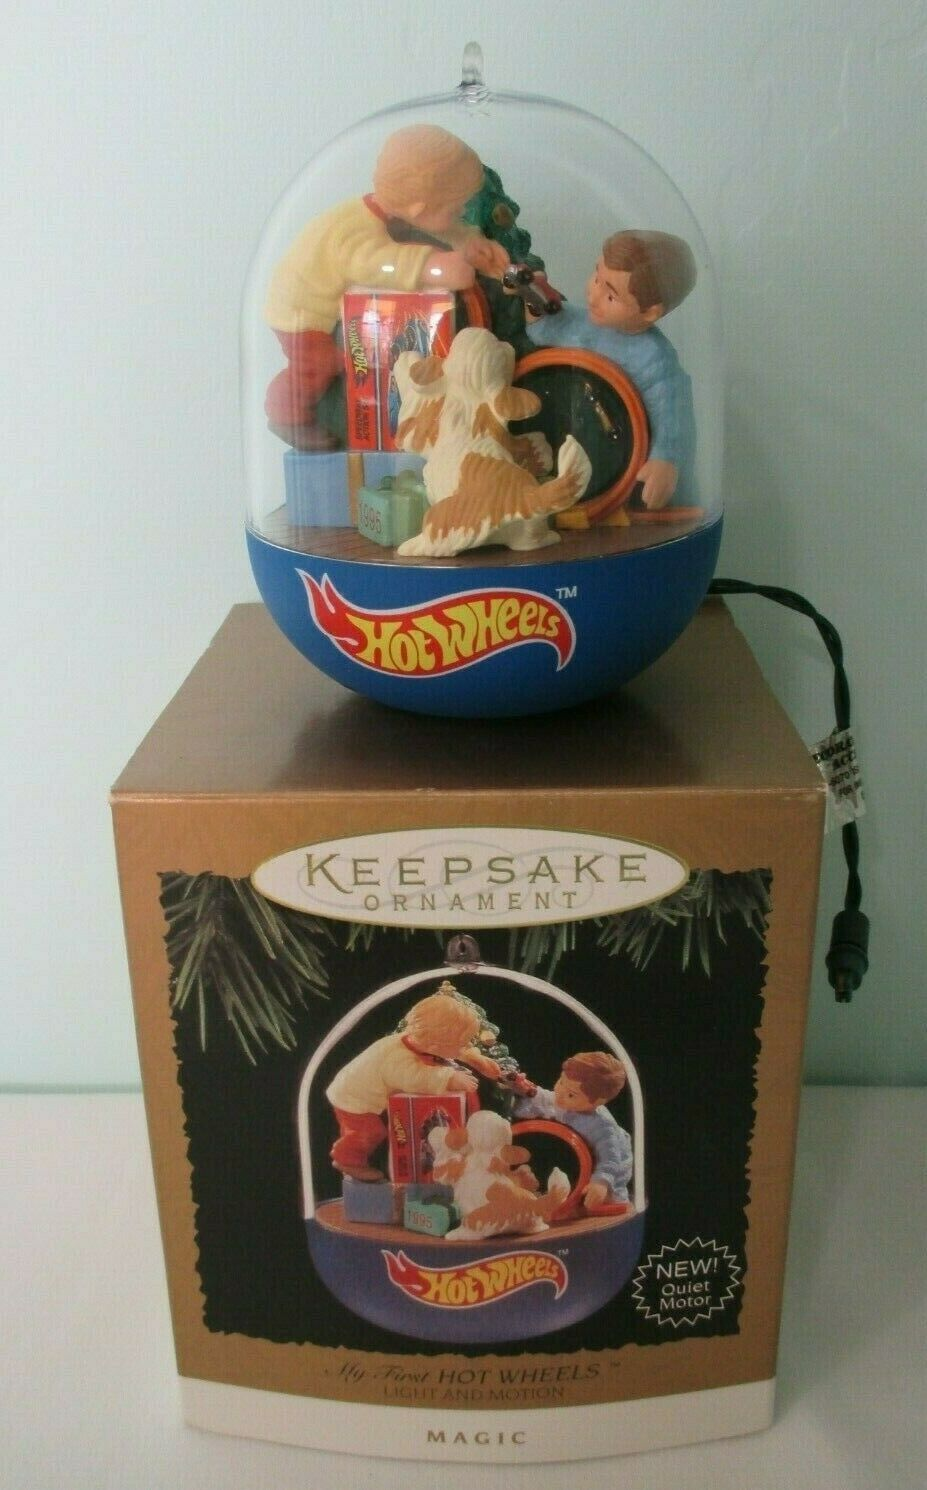 My First Hot Wheels Light and Motion Hallmark Magic Ornament 1995 Gently Used